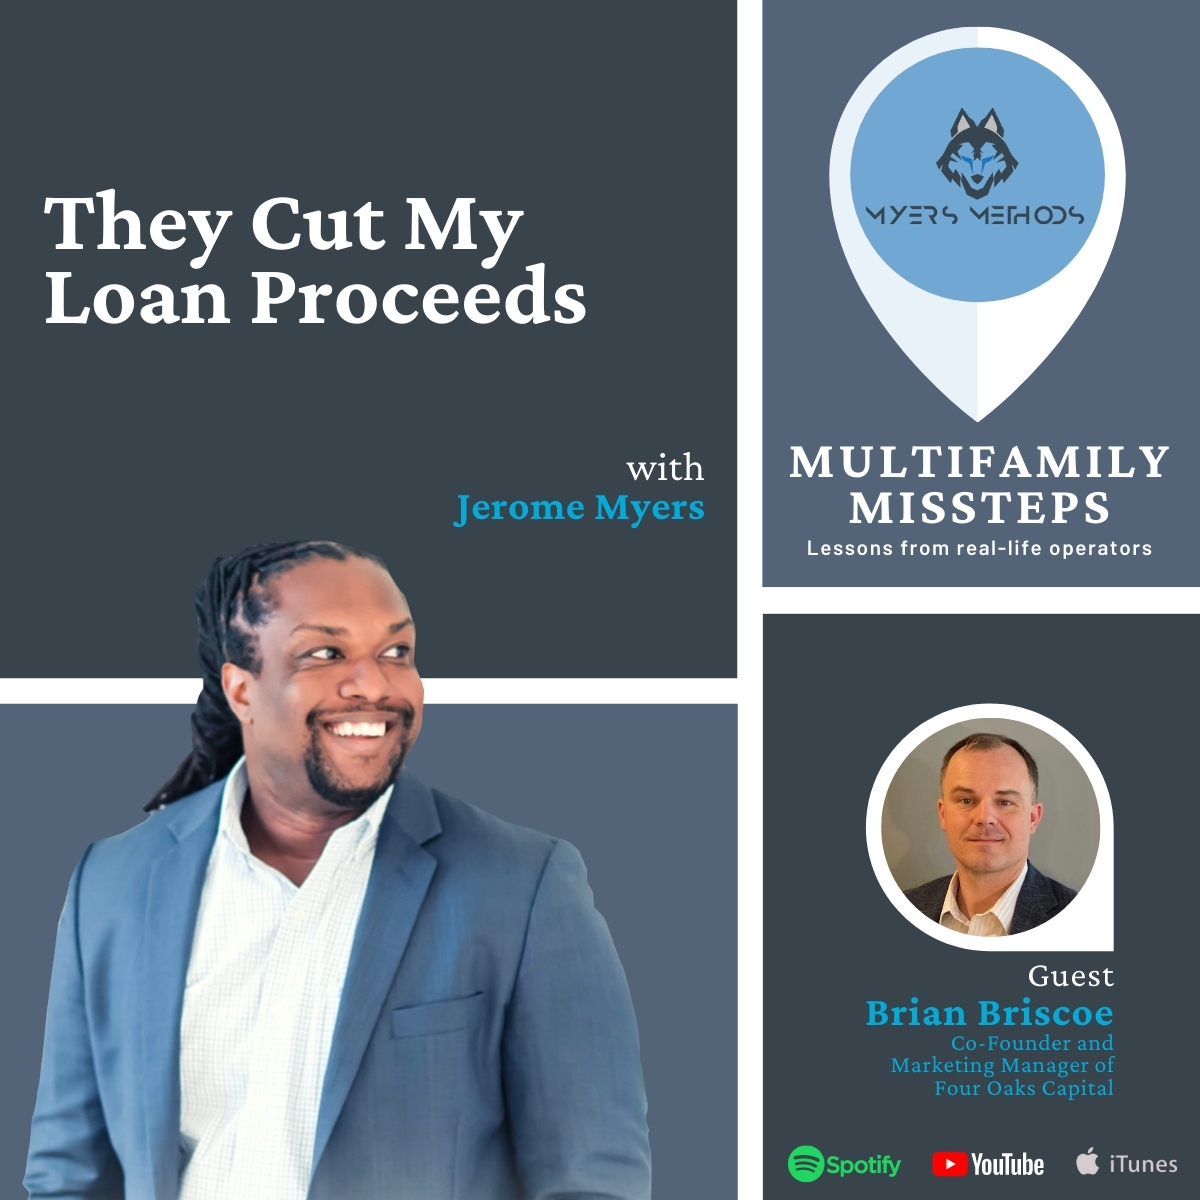 Brian Briscoe on Multifamily Missteps with Jerome Myers